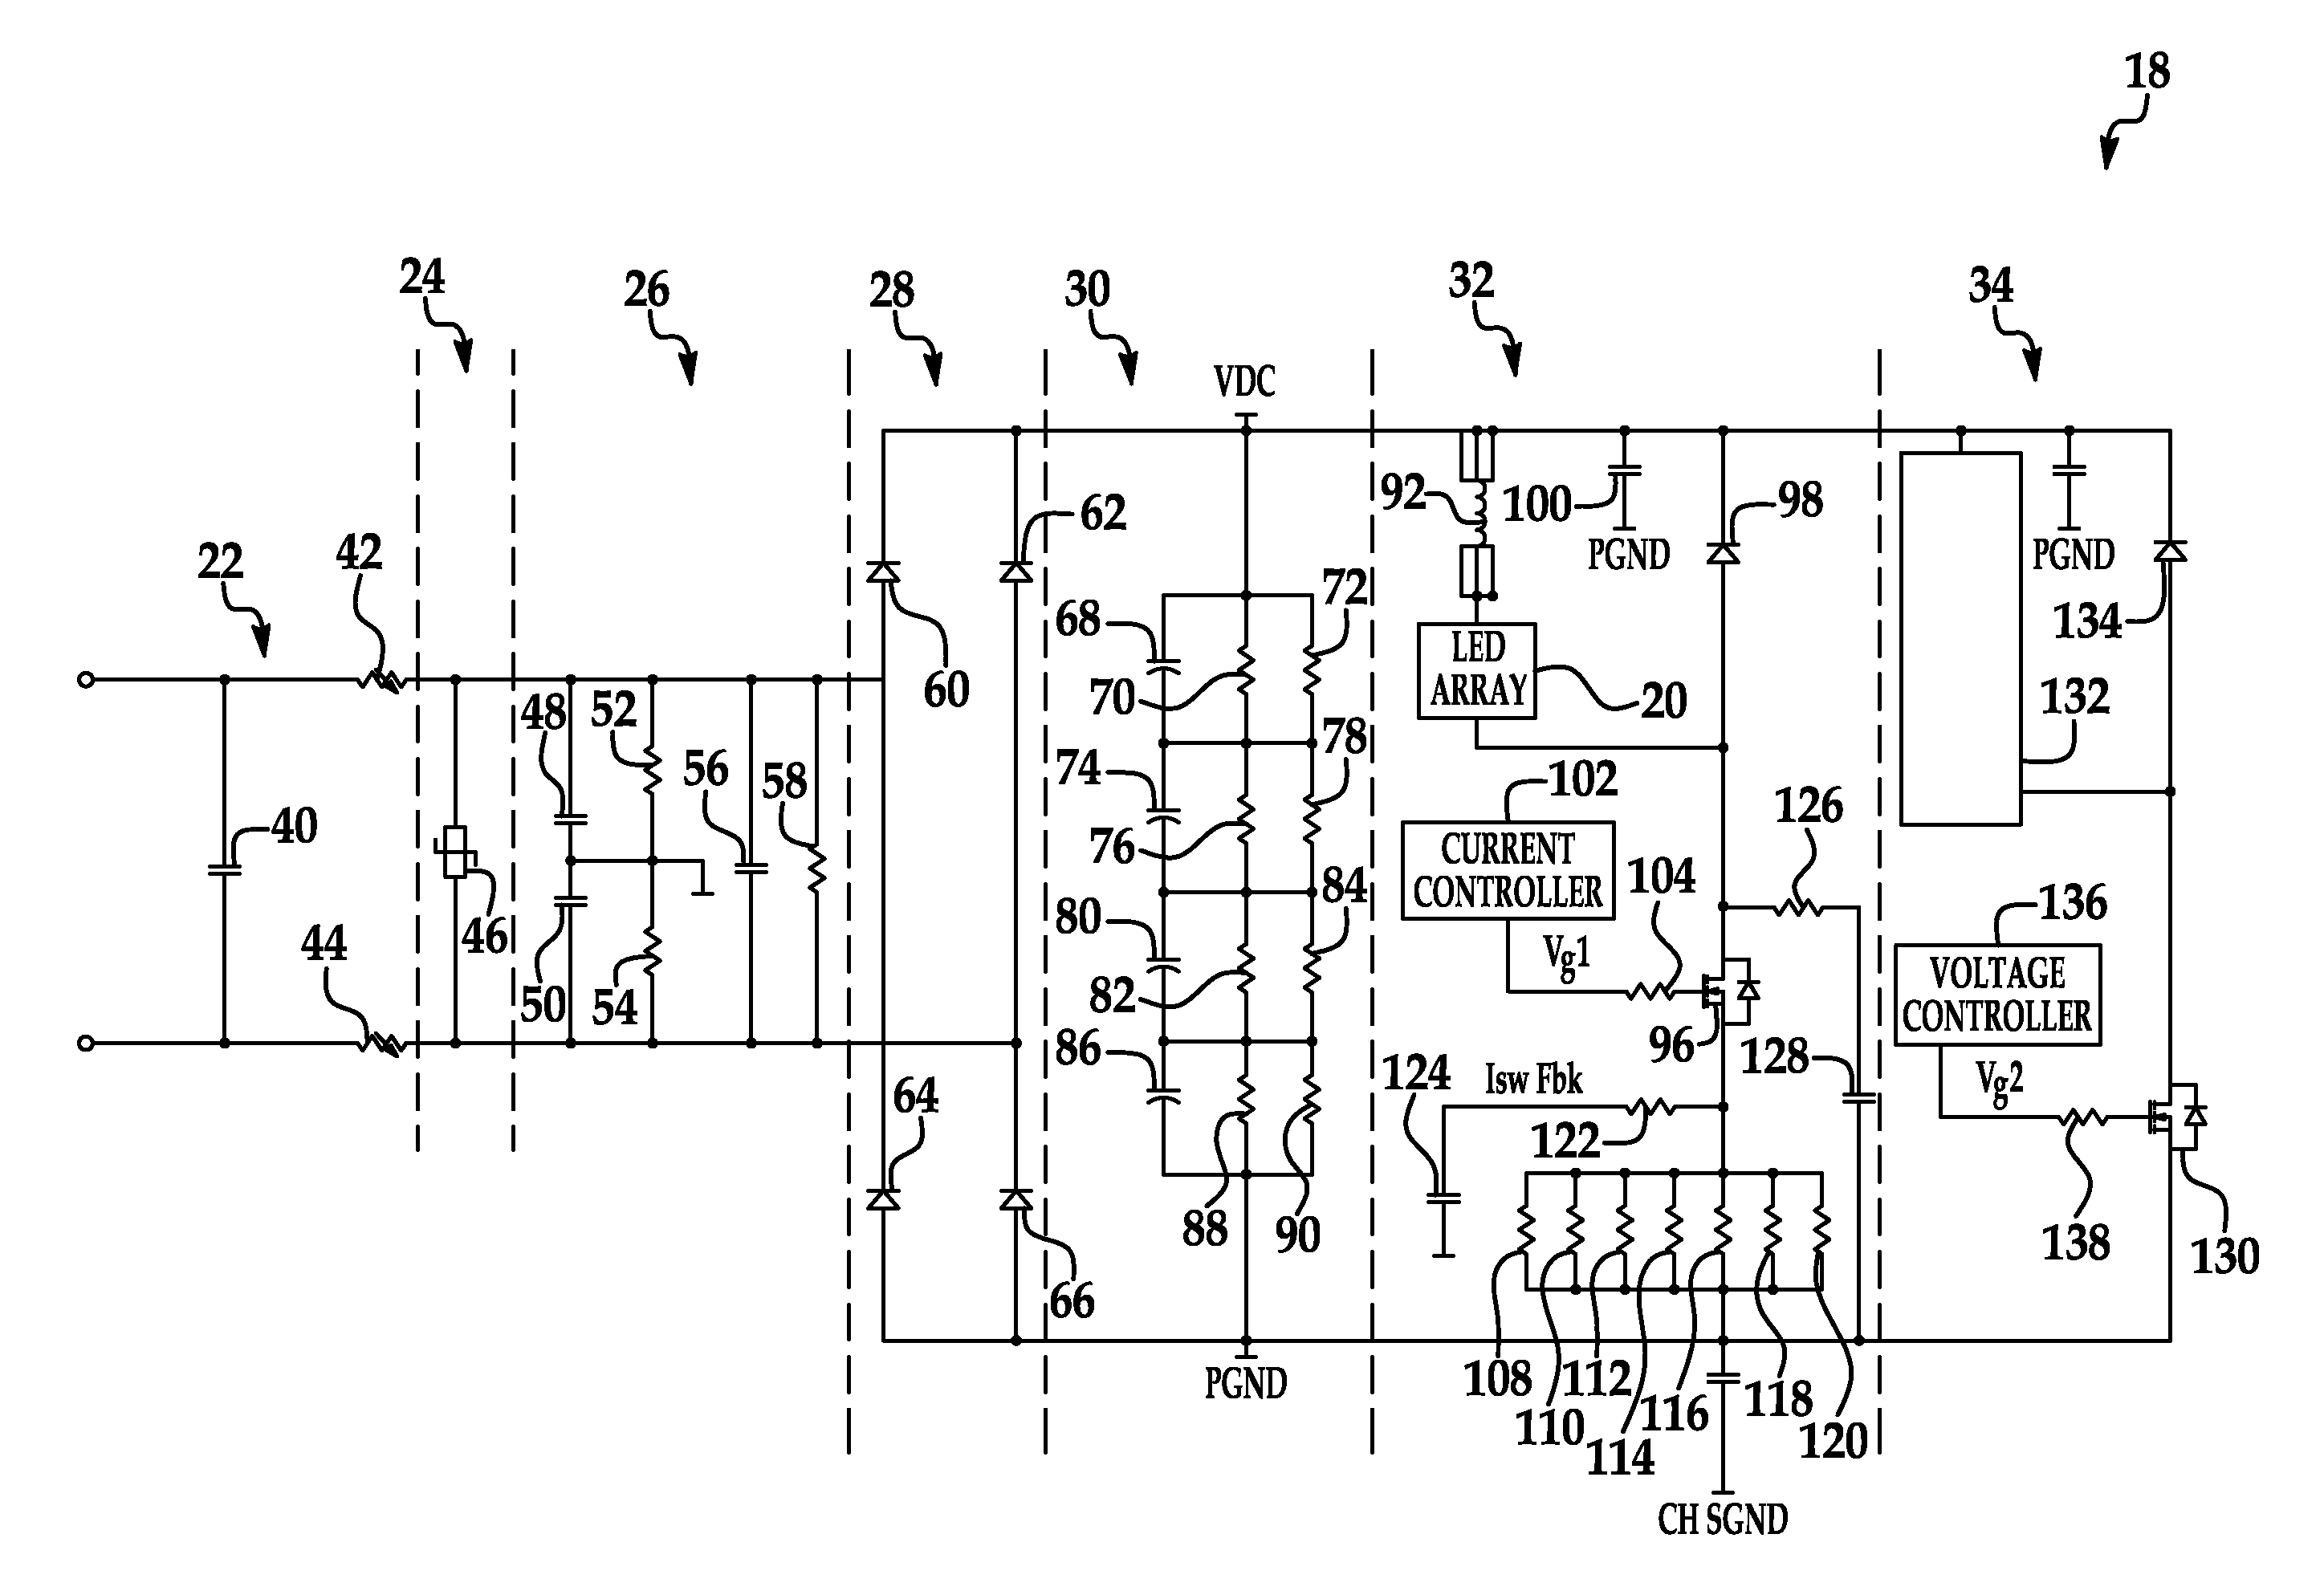 patent us8330381 - electronic circuit for dc conversion of fluorescent lighting ballast